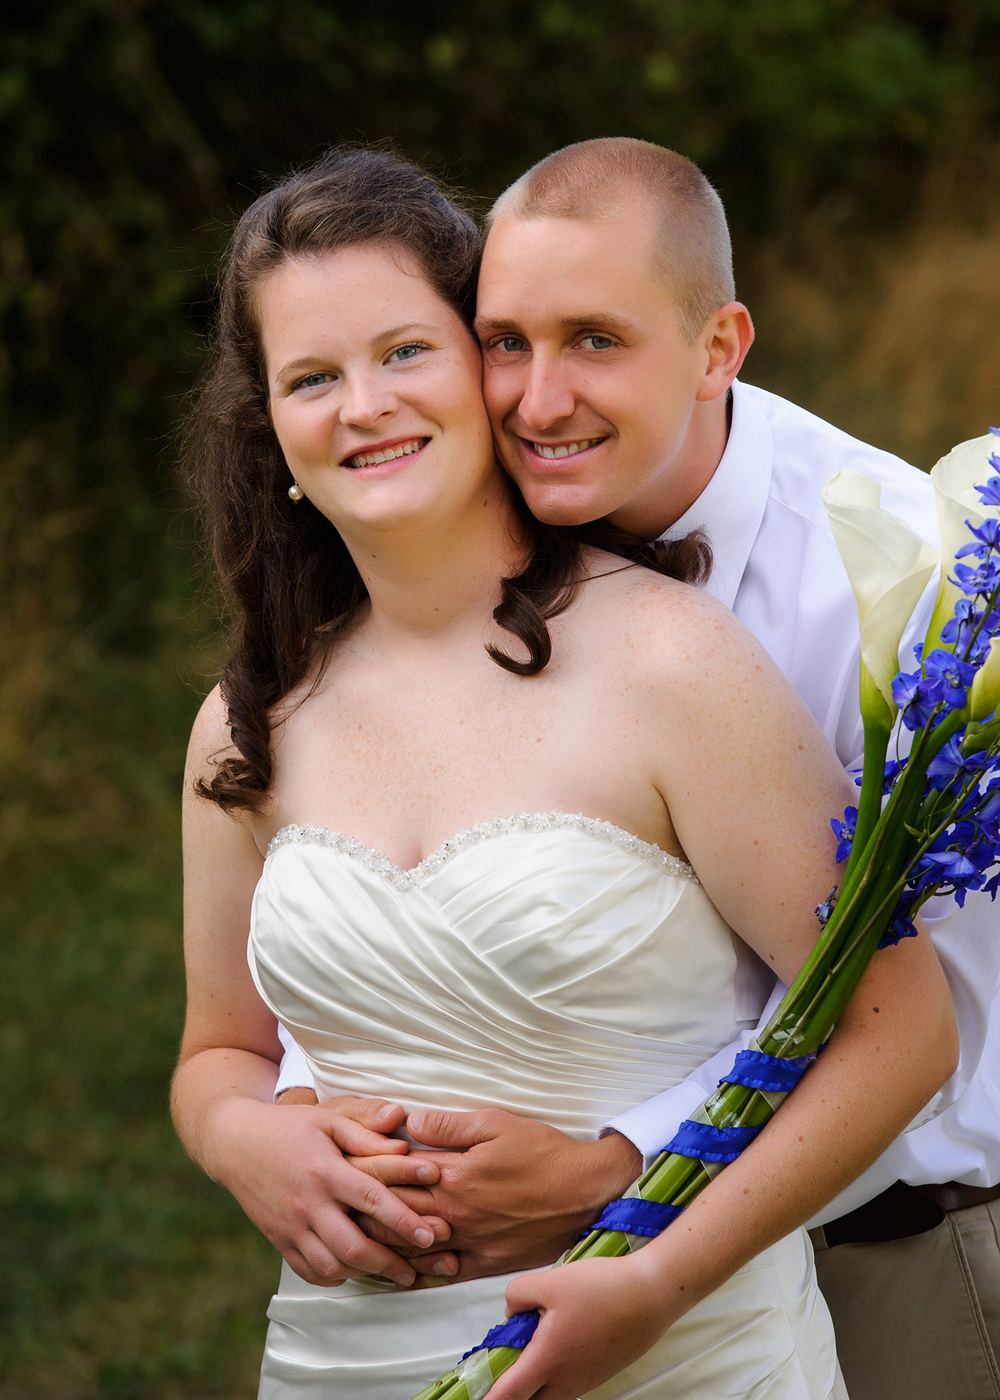 wedding_photographer_lexington_ky_studio_walz156.jpg